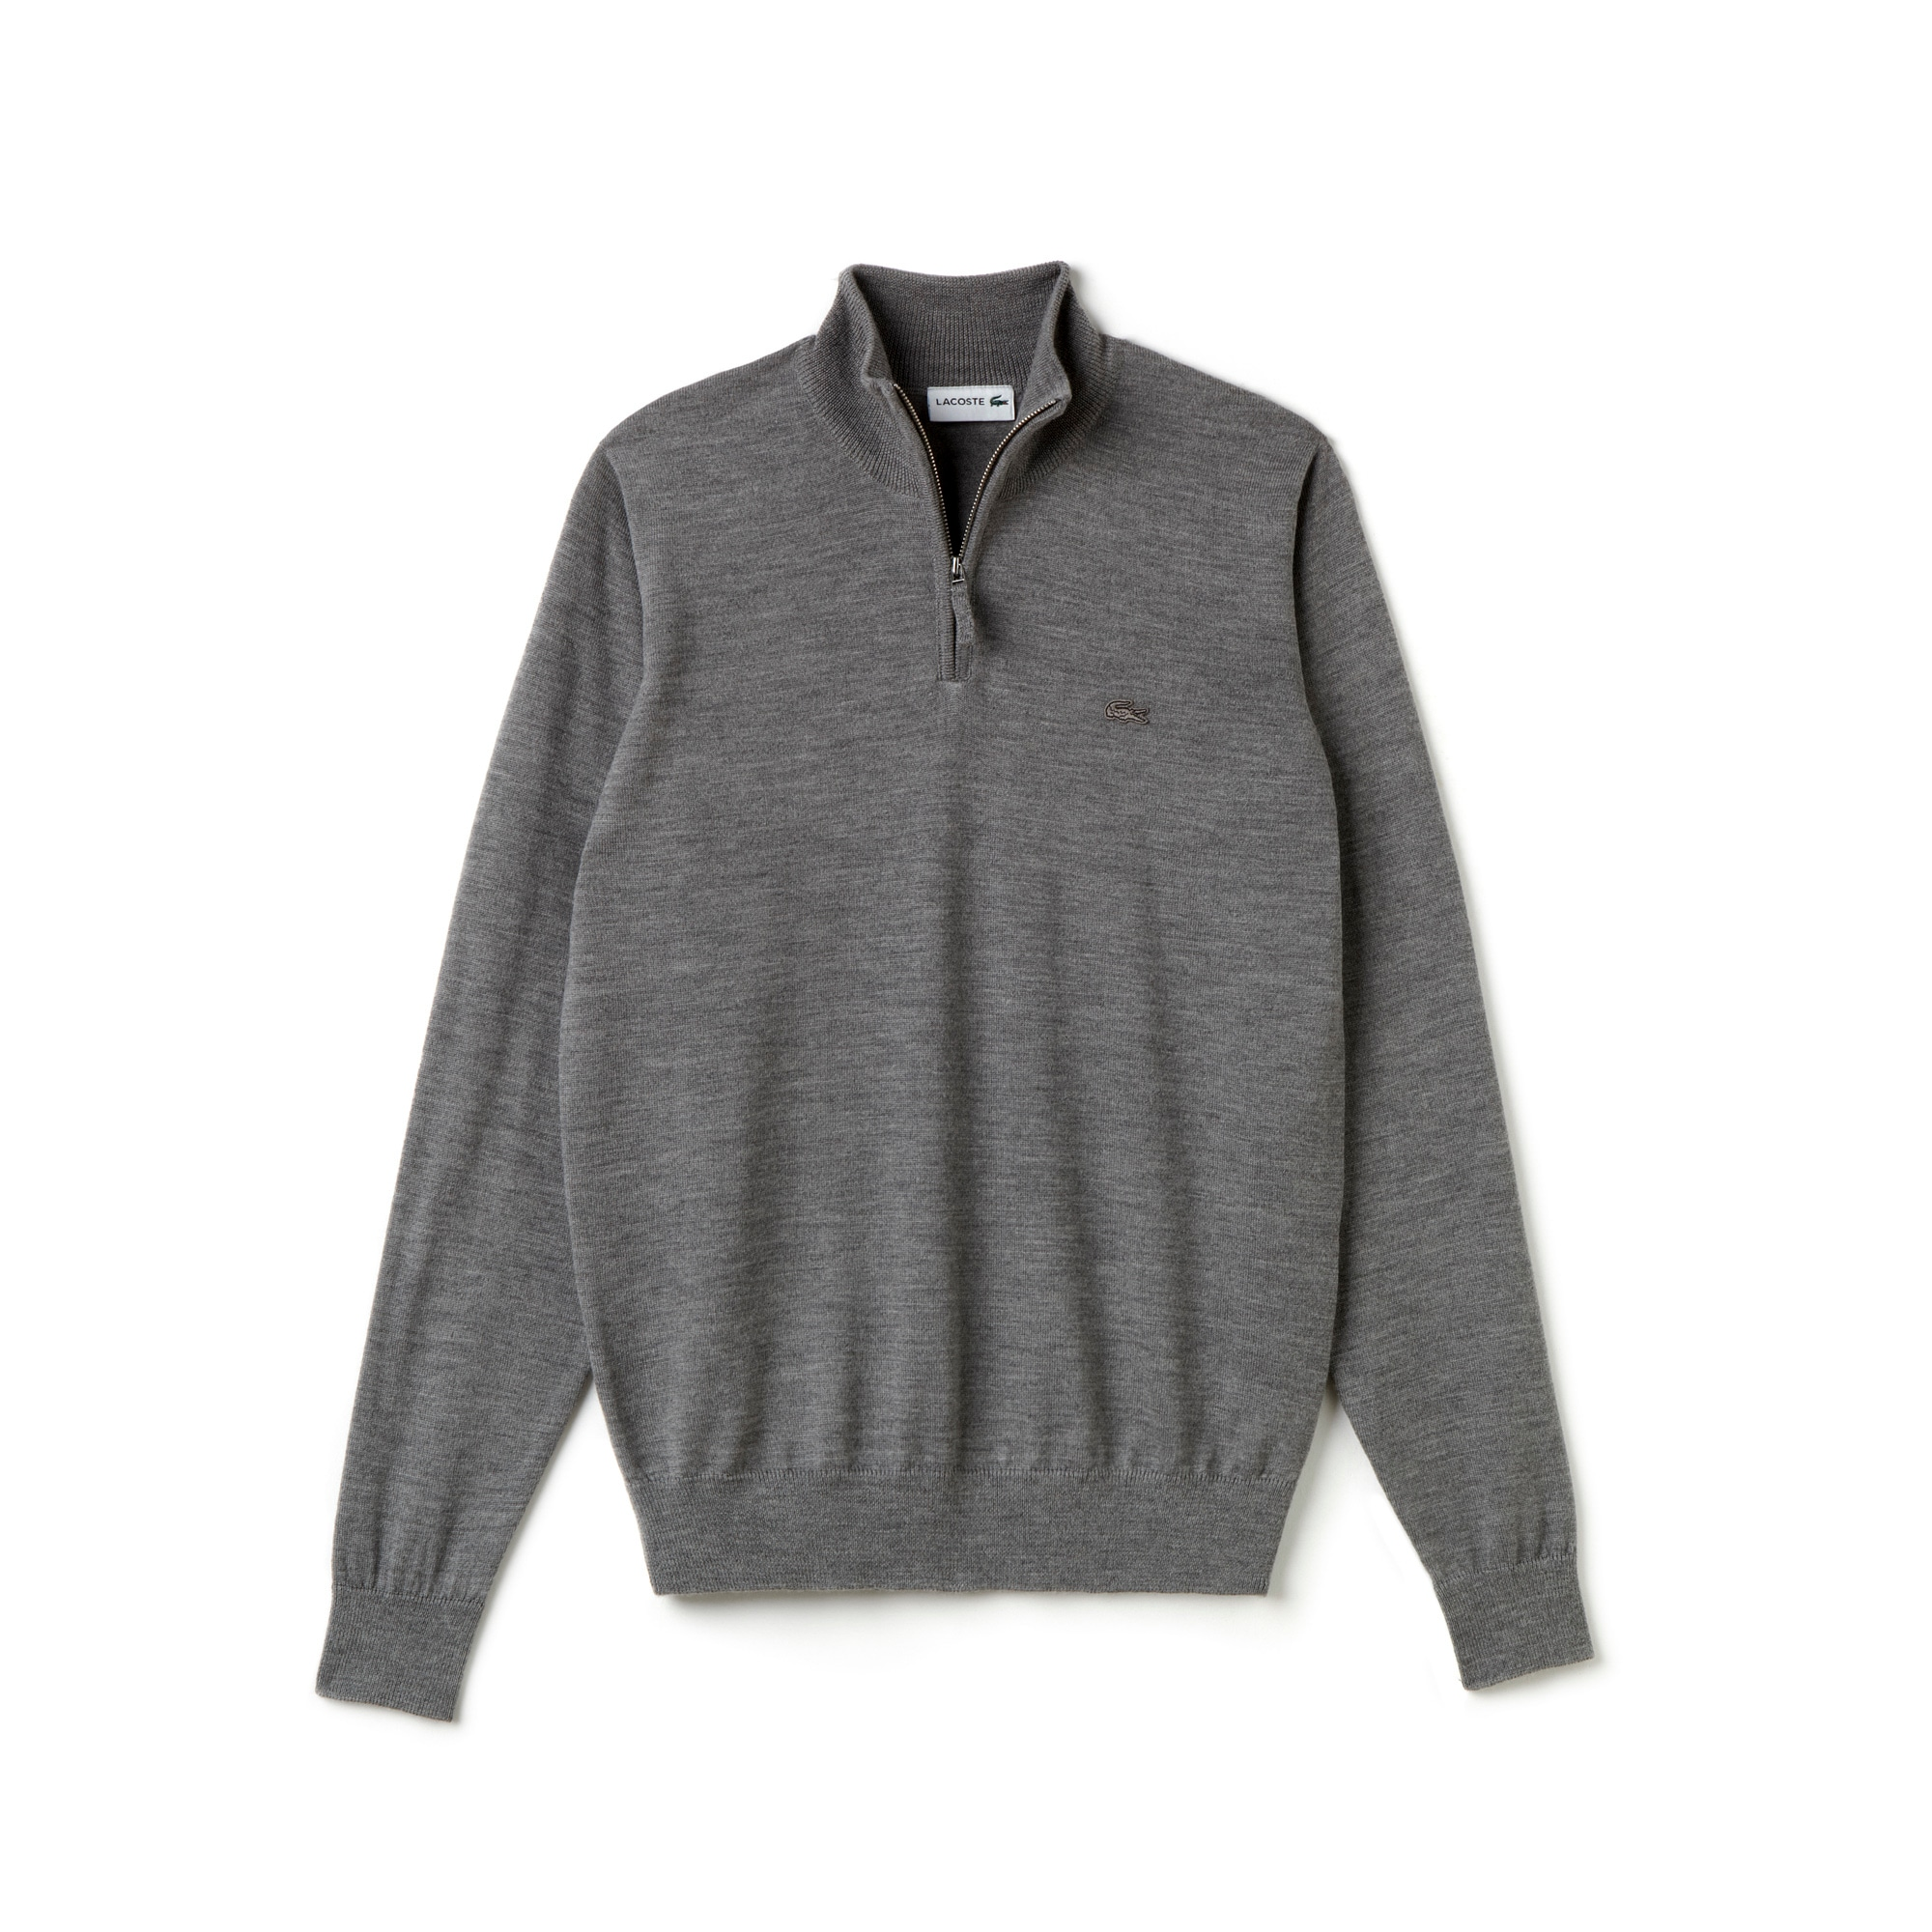 fe2701cad363 ... Men s Zippered Stand-Up Collar Wool Jersey Sweater